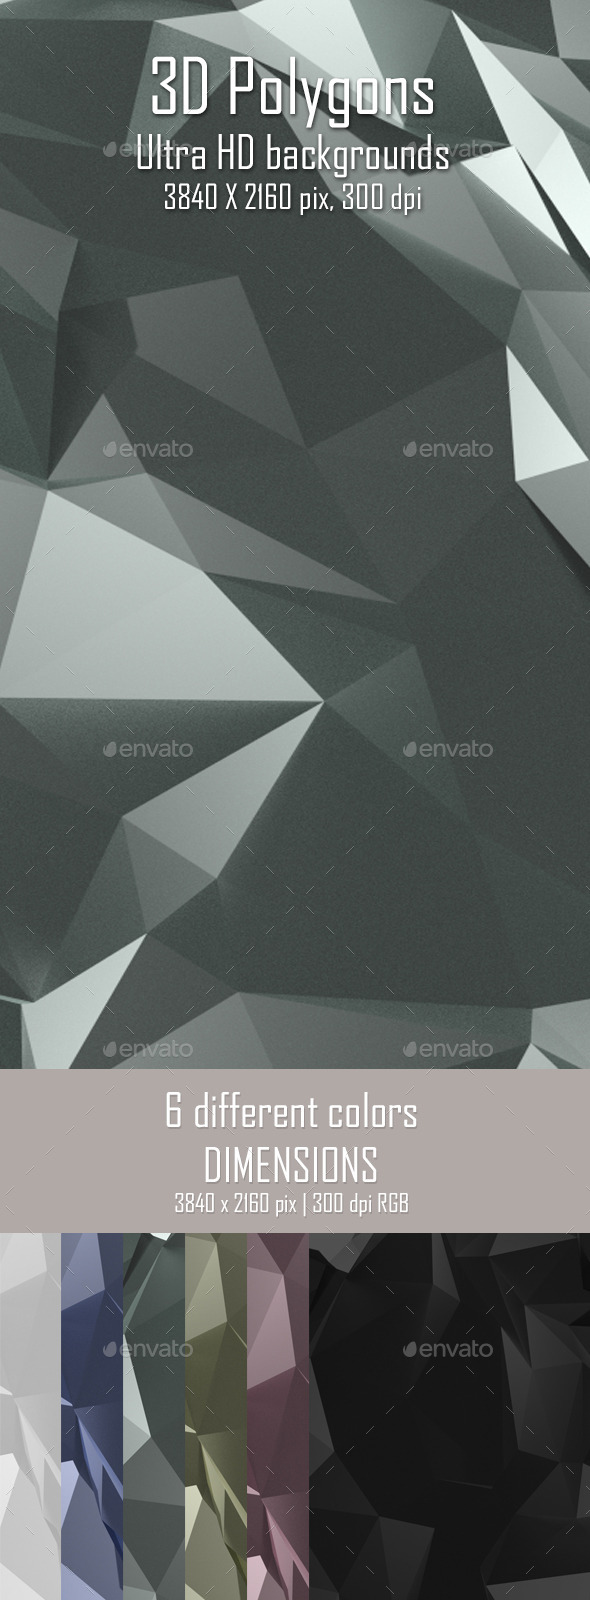 3D Polygon Background